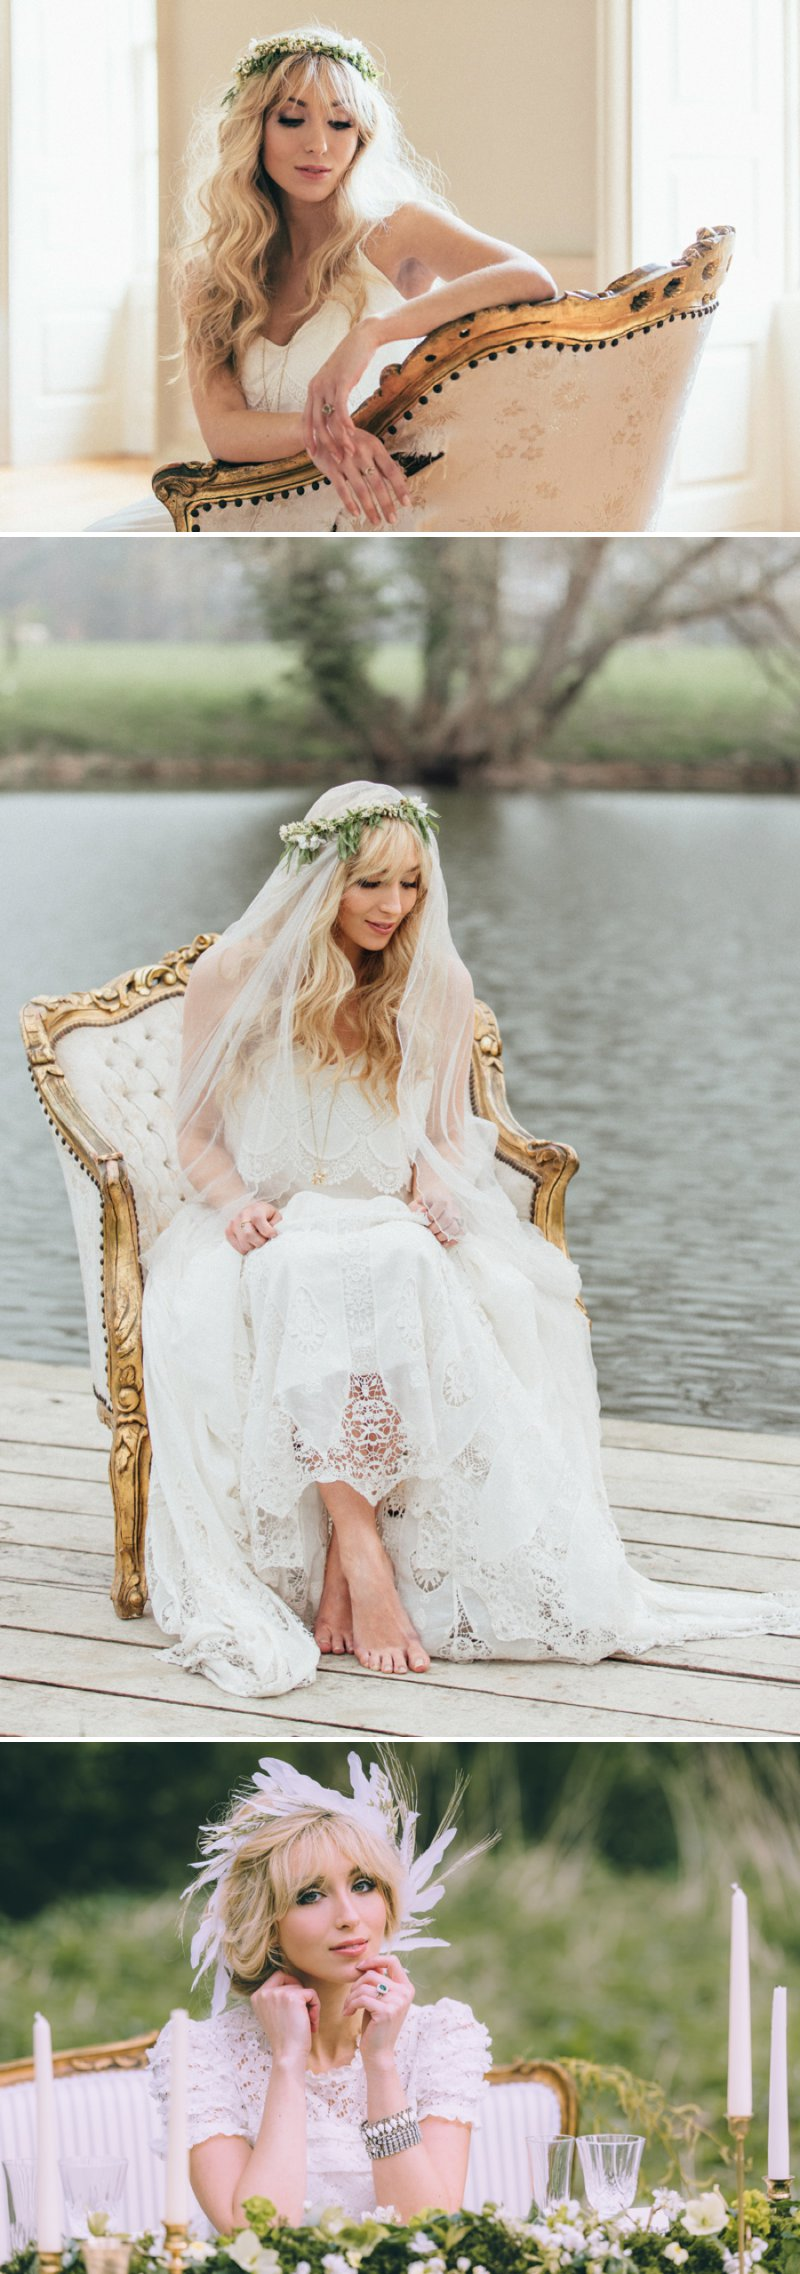 Rustic Bridal Shoot From Coco Venues And Katrina Otter Weddings And Events Inspired By The Promise Of Spring At Narborough Hall Gardens With Dresses From Rue De Seine Bridal With Images From Rebecca Goddard 1